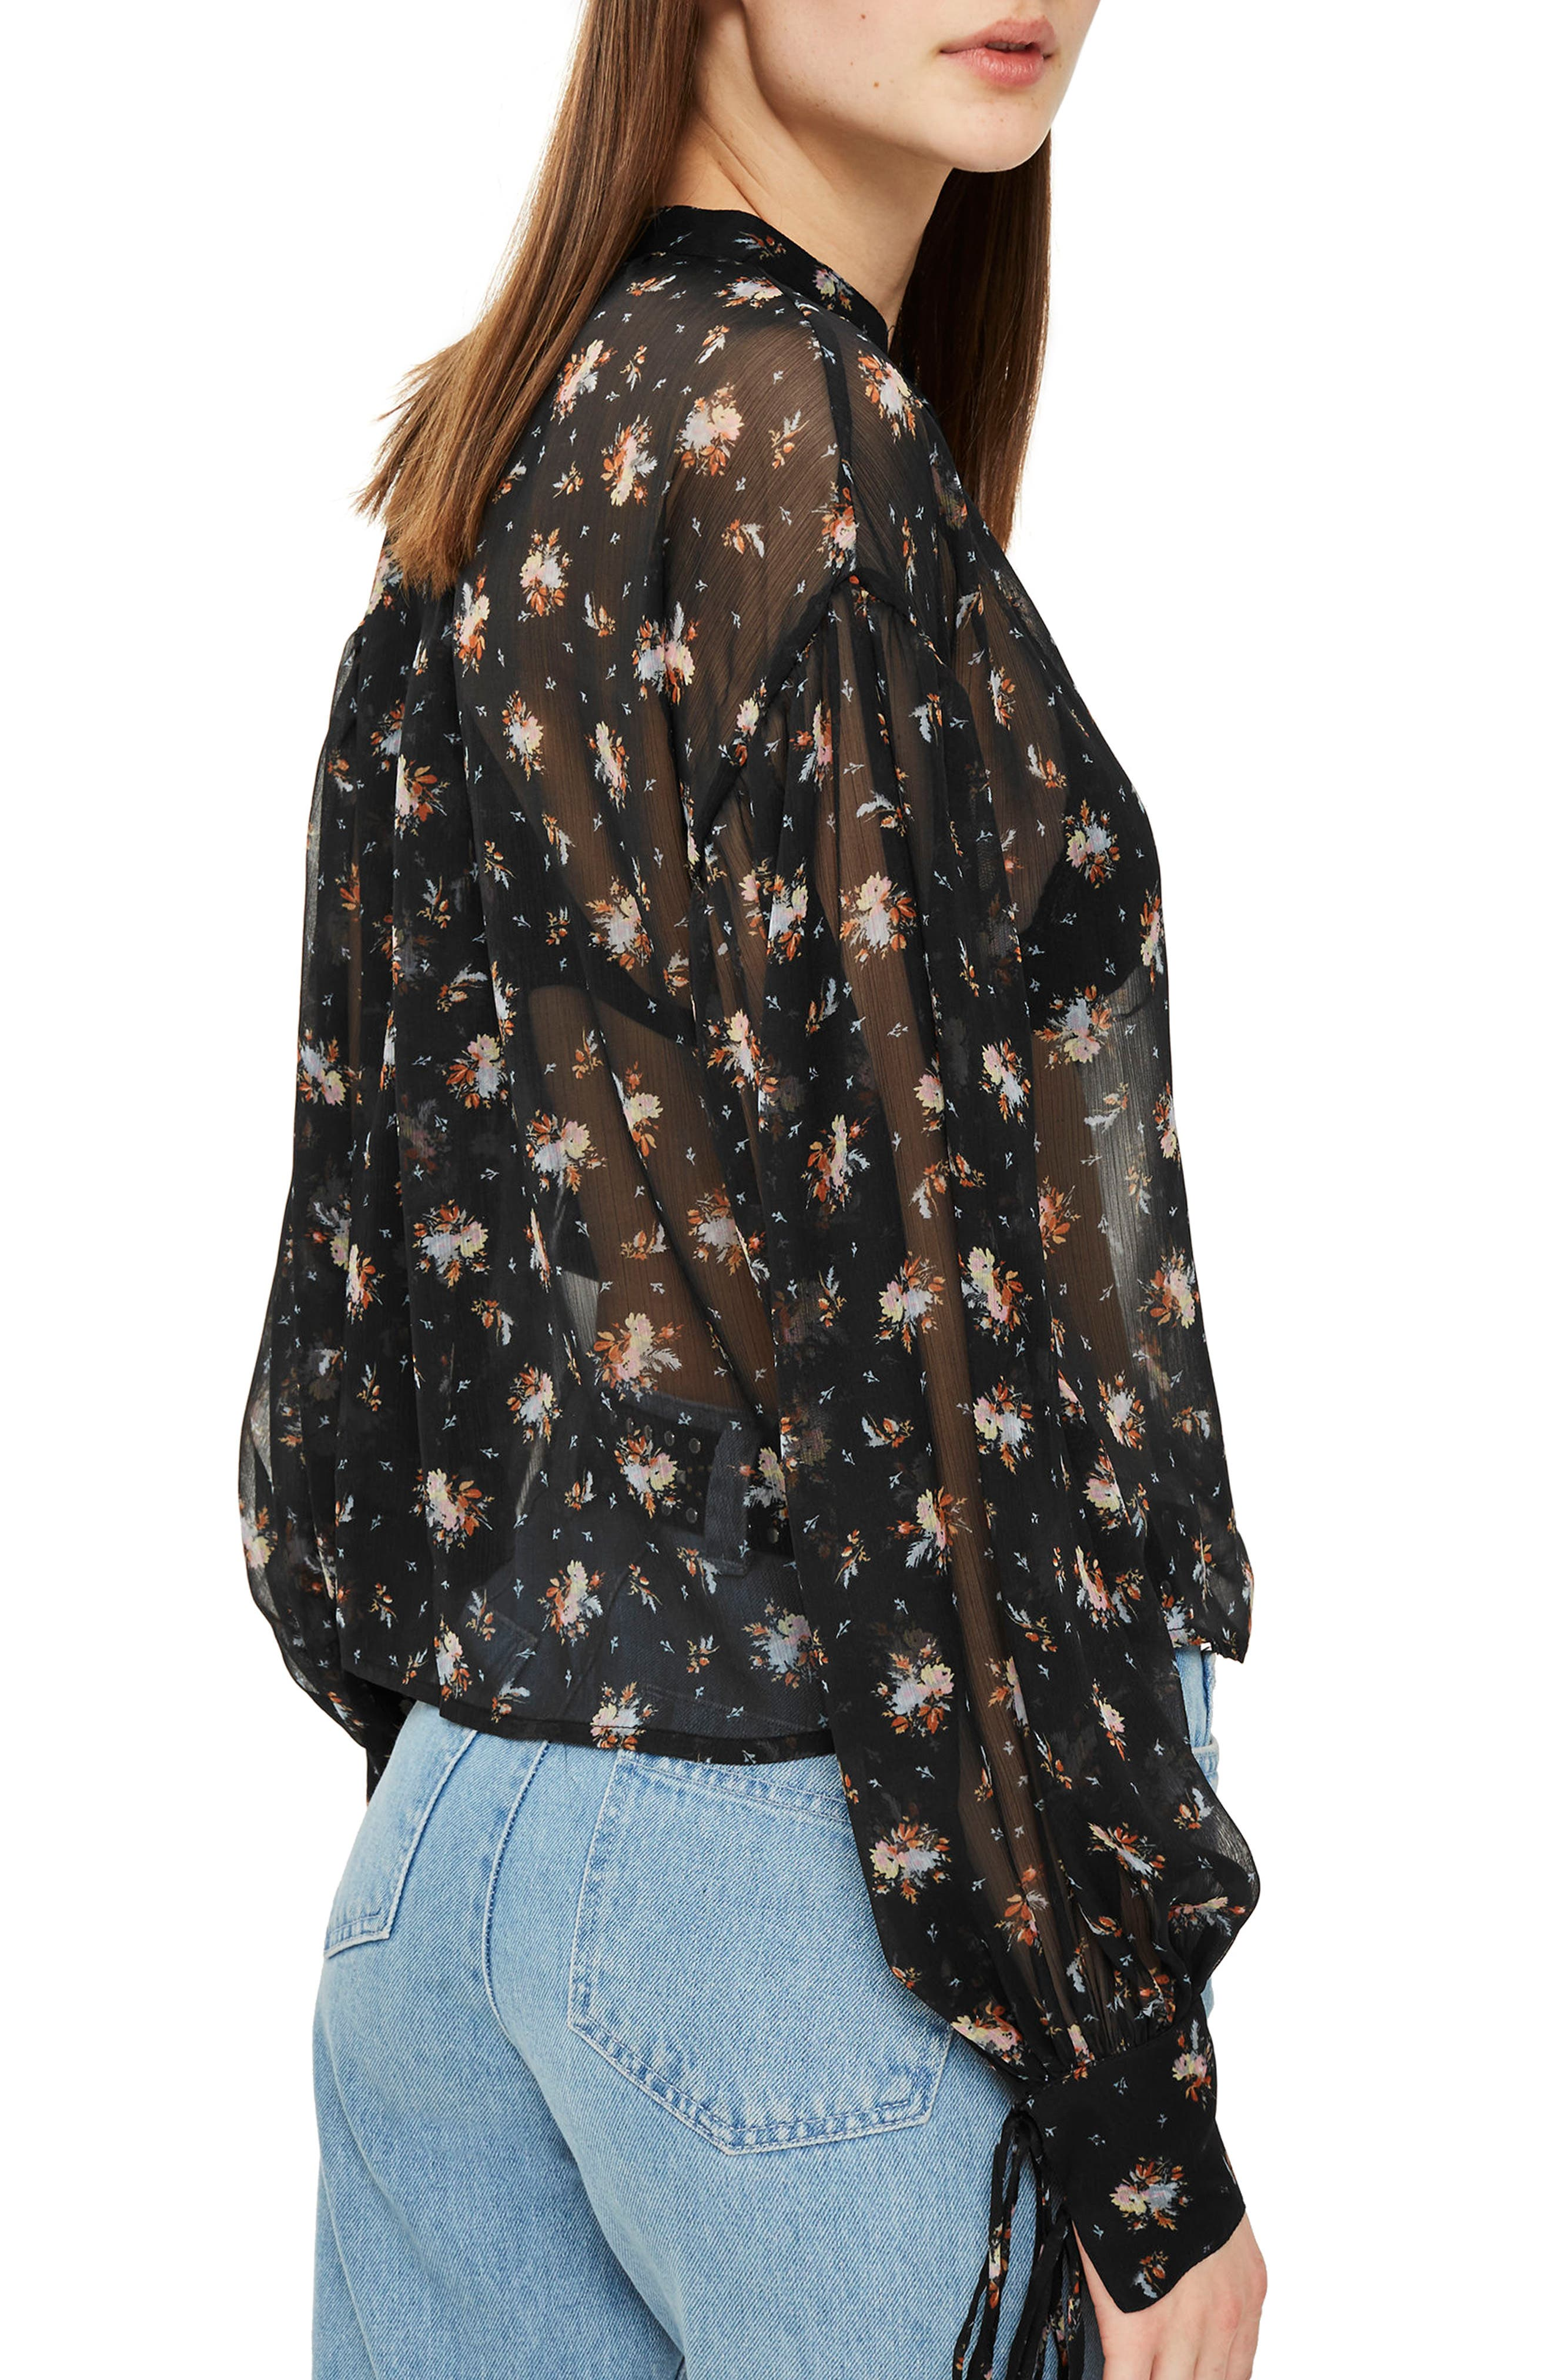 Gypsy Floral Sheer Blouse,                             Alternate thumbnail 2, color,                             001